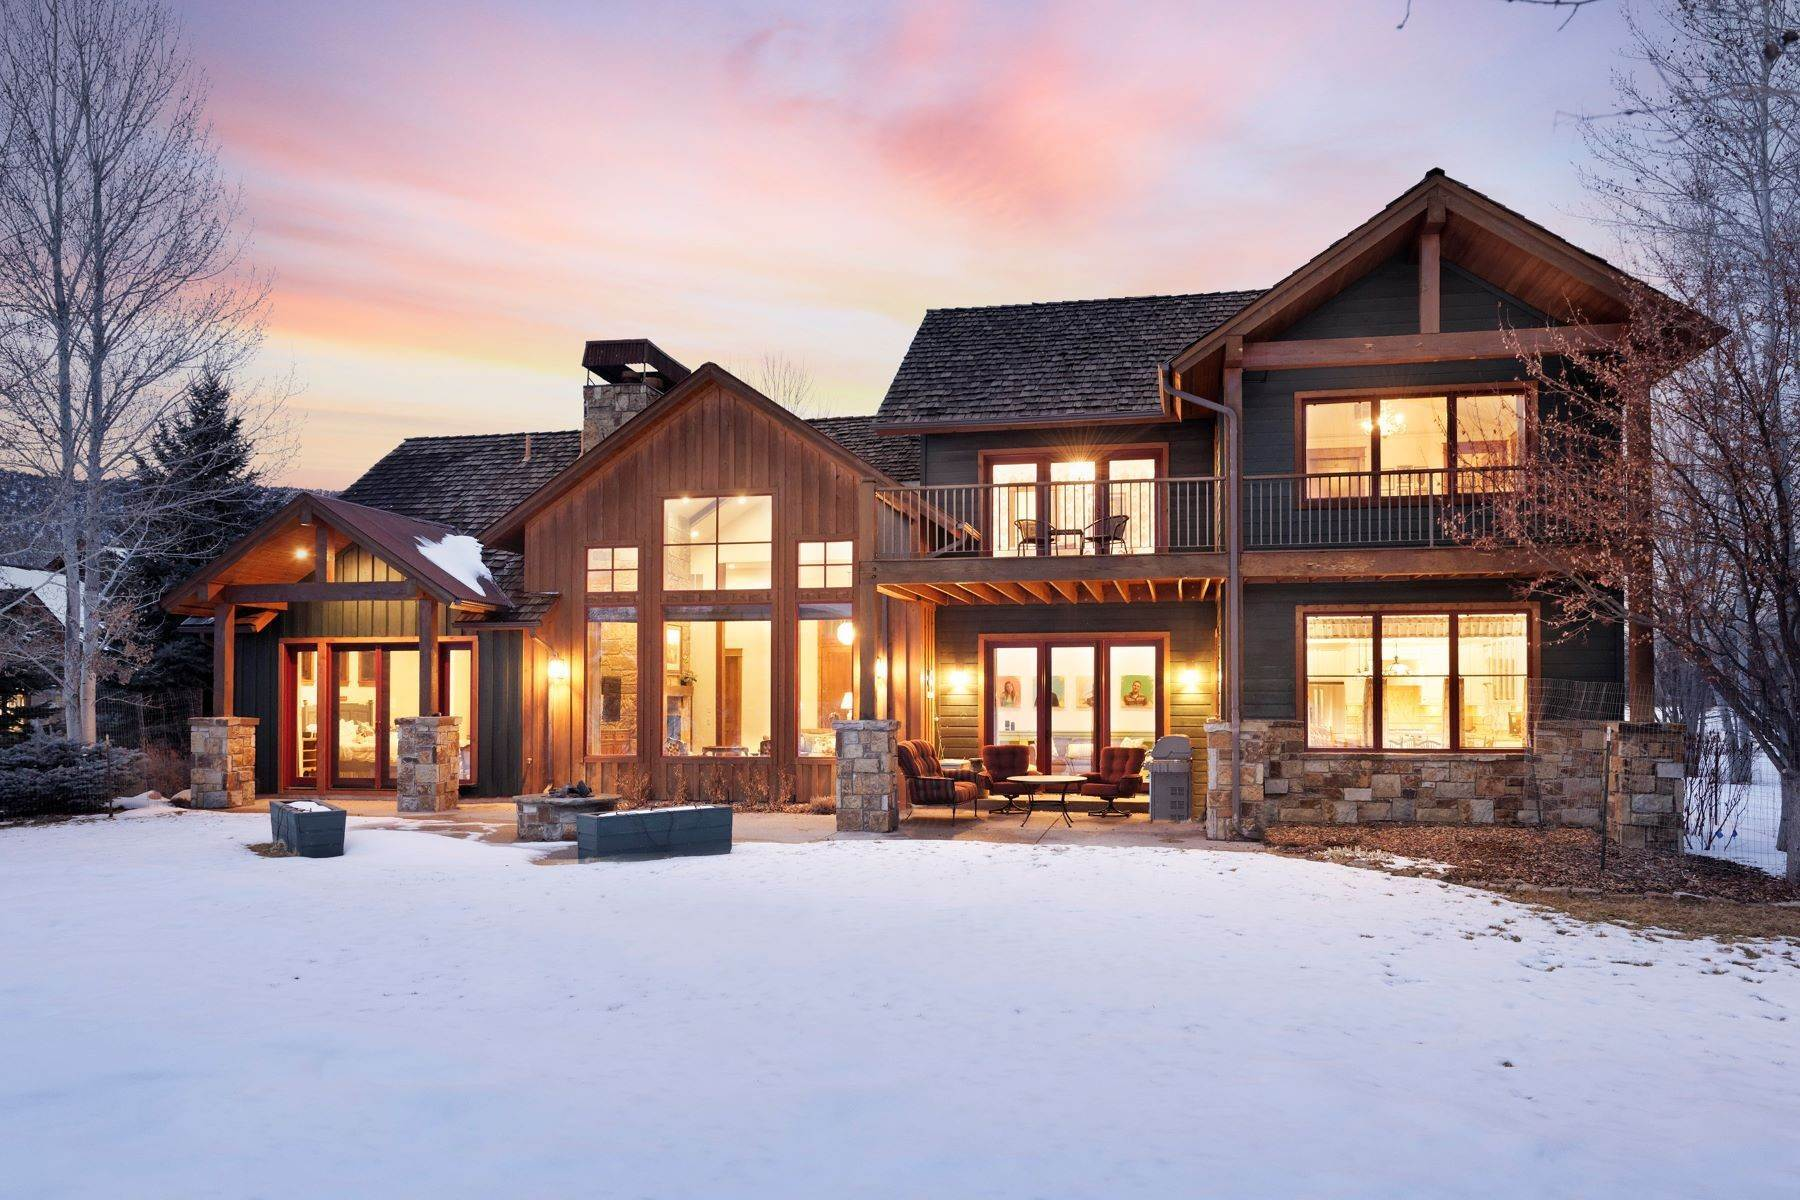 Single Family Homes for Sale at Custom Dream Home on 17th fairway 132 Diamond A Ranch Road Carbondale, Colorado 81623 United States